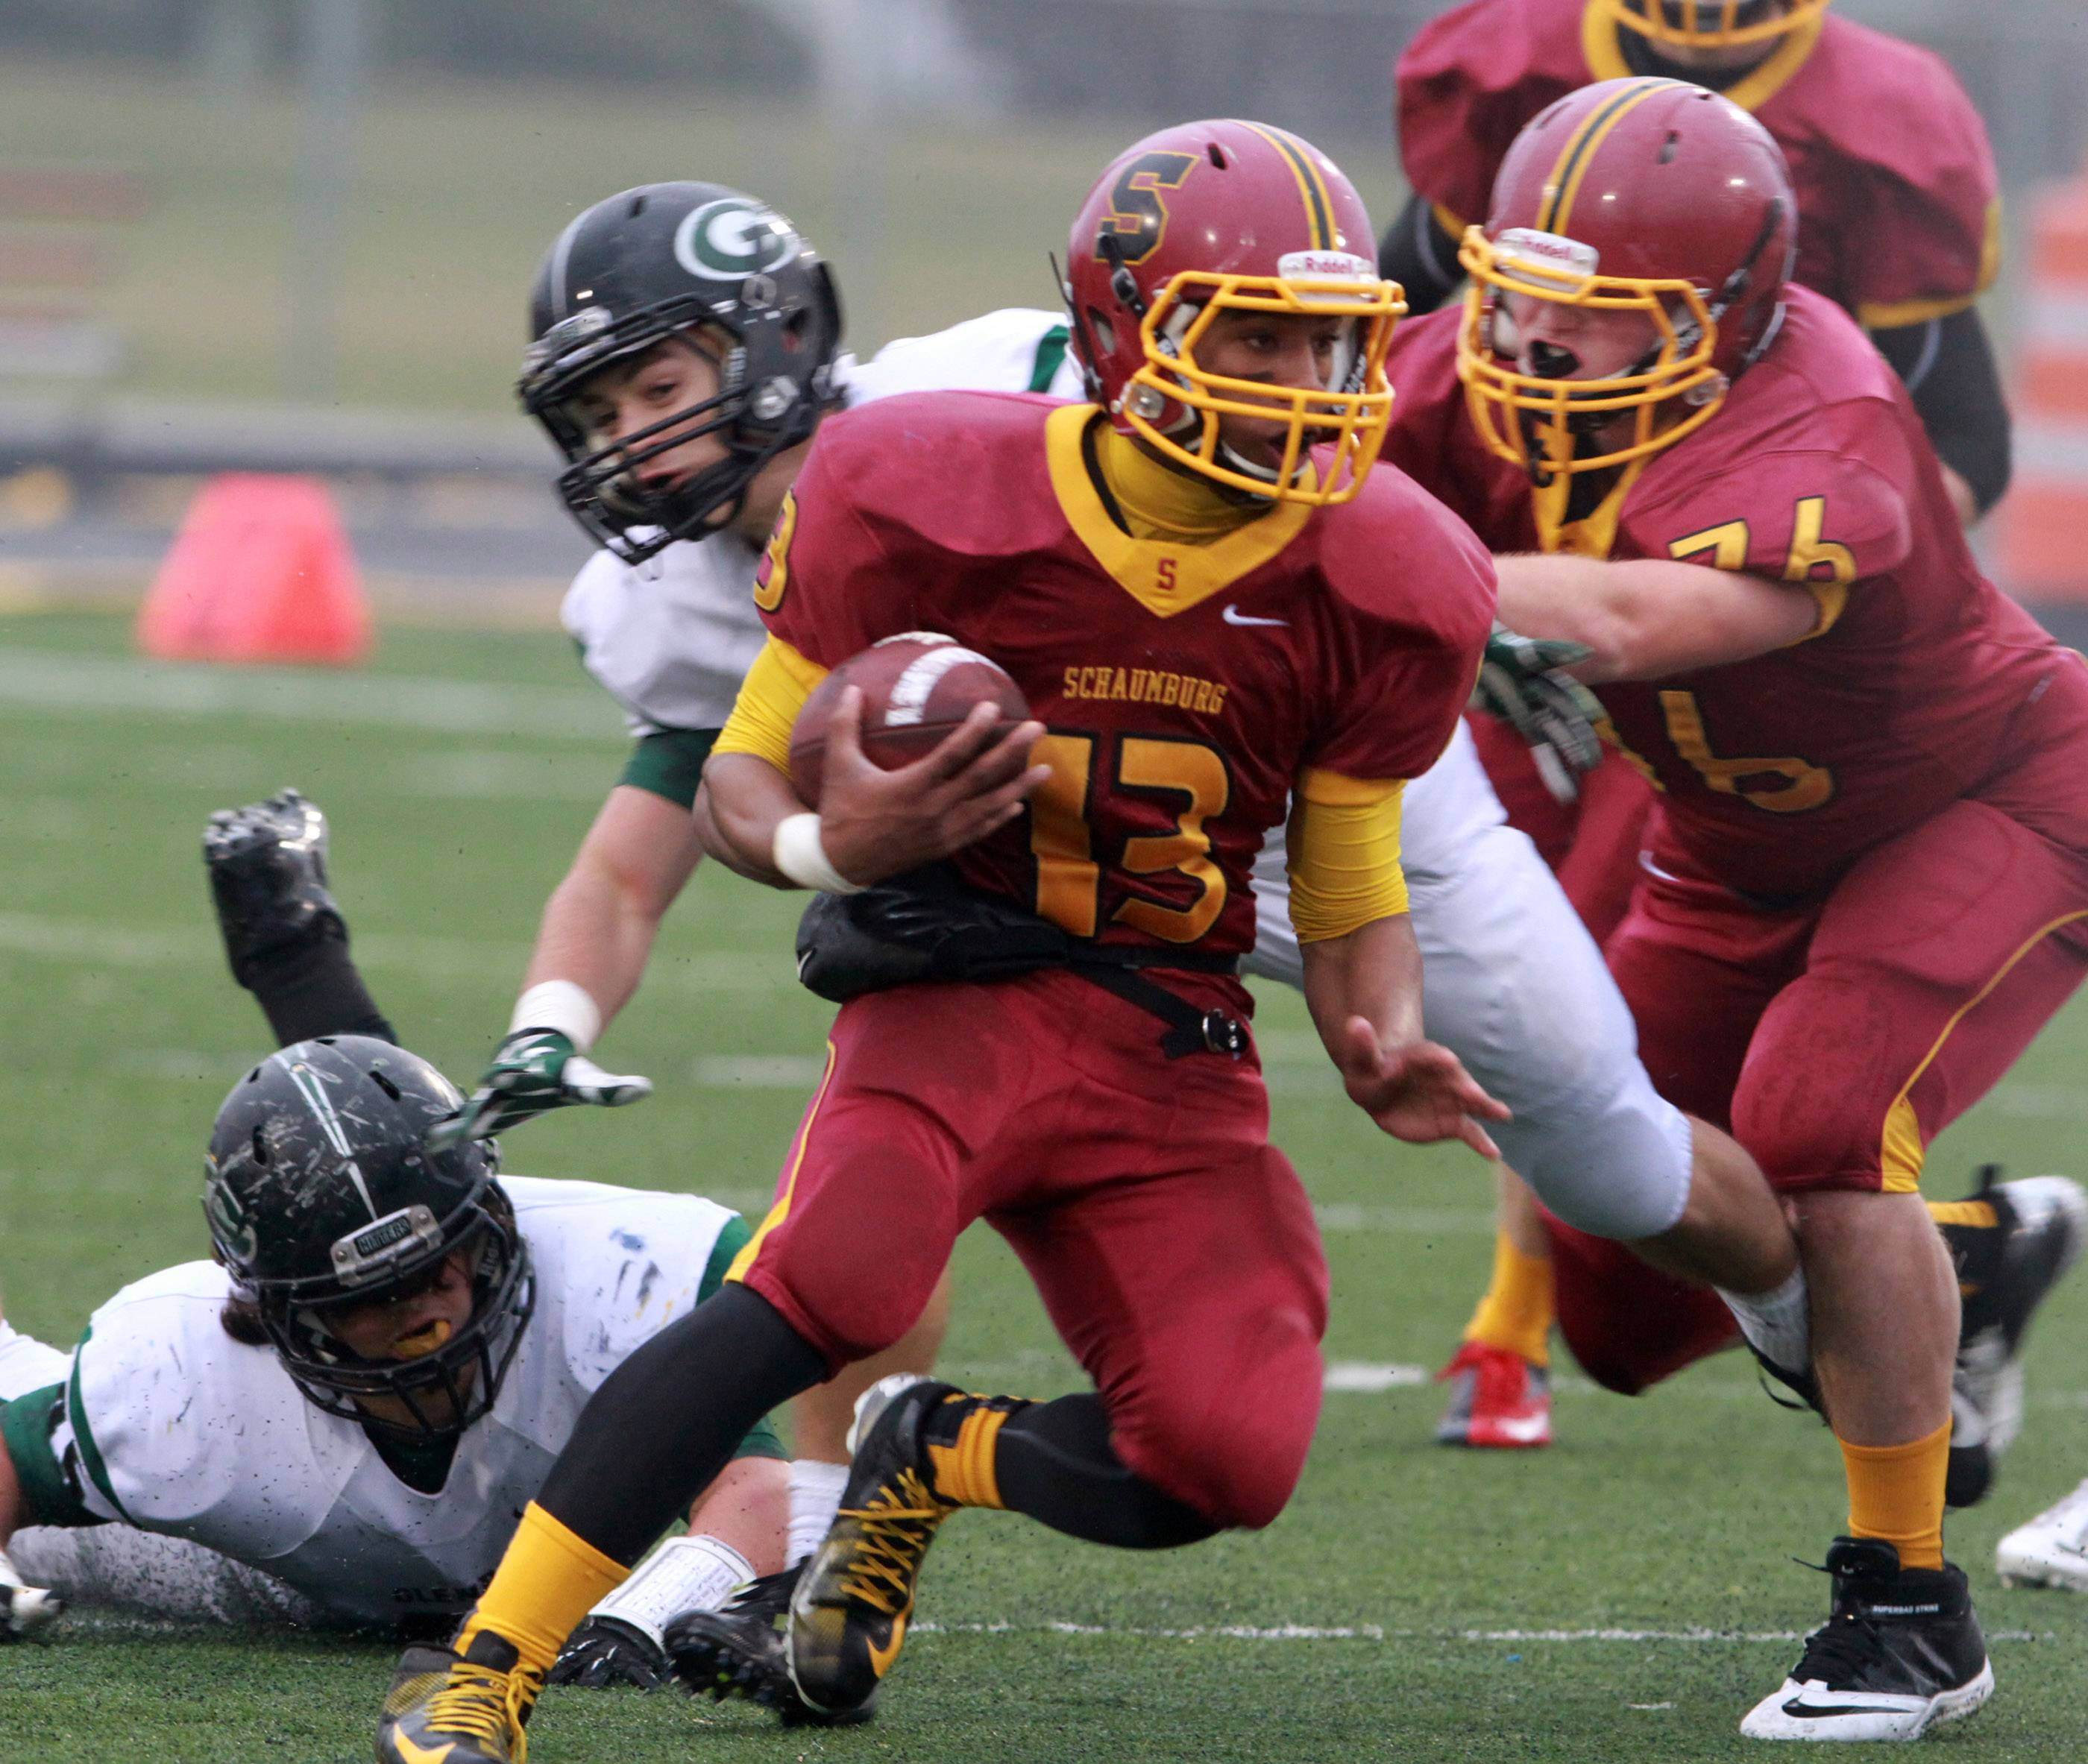 Stacey Smith, who excelled at running Schaumburg's triple option, runs the ball against Glenbard West in last fall's Class 7A state quarterfinals.